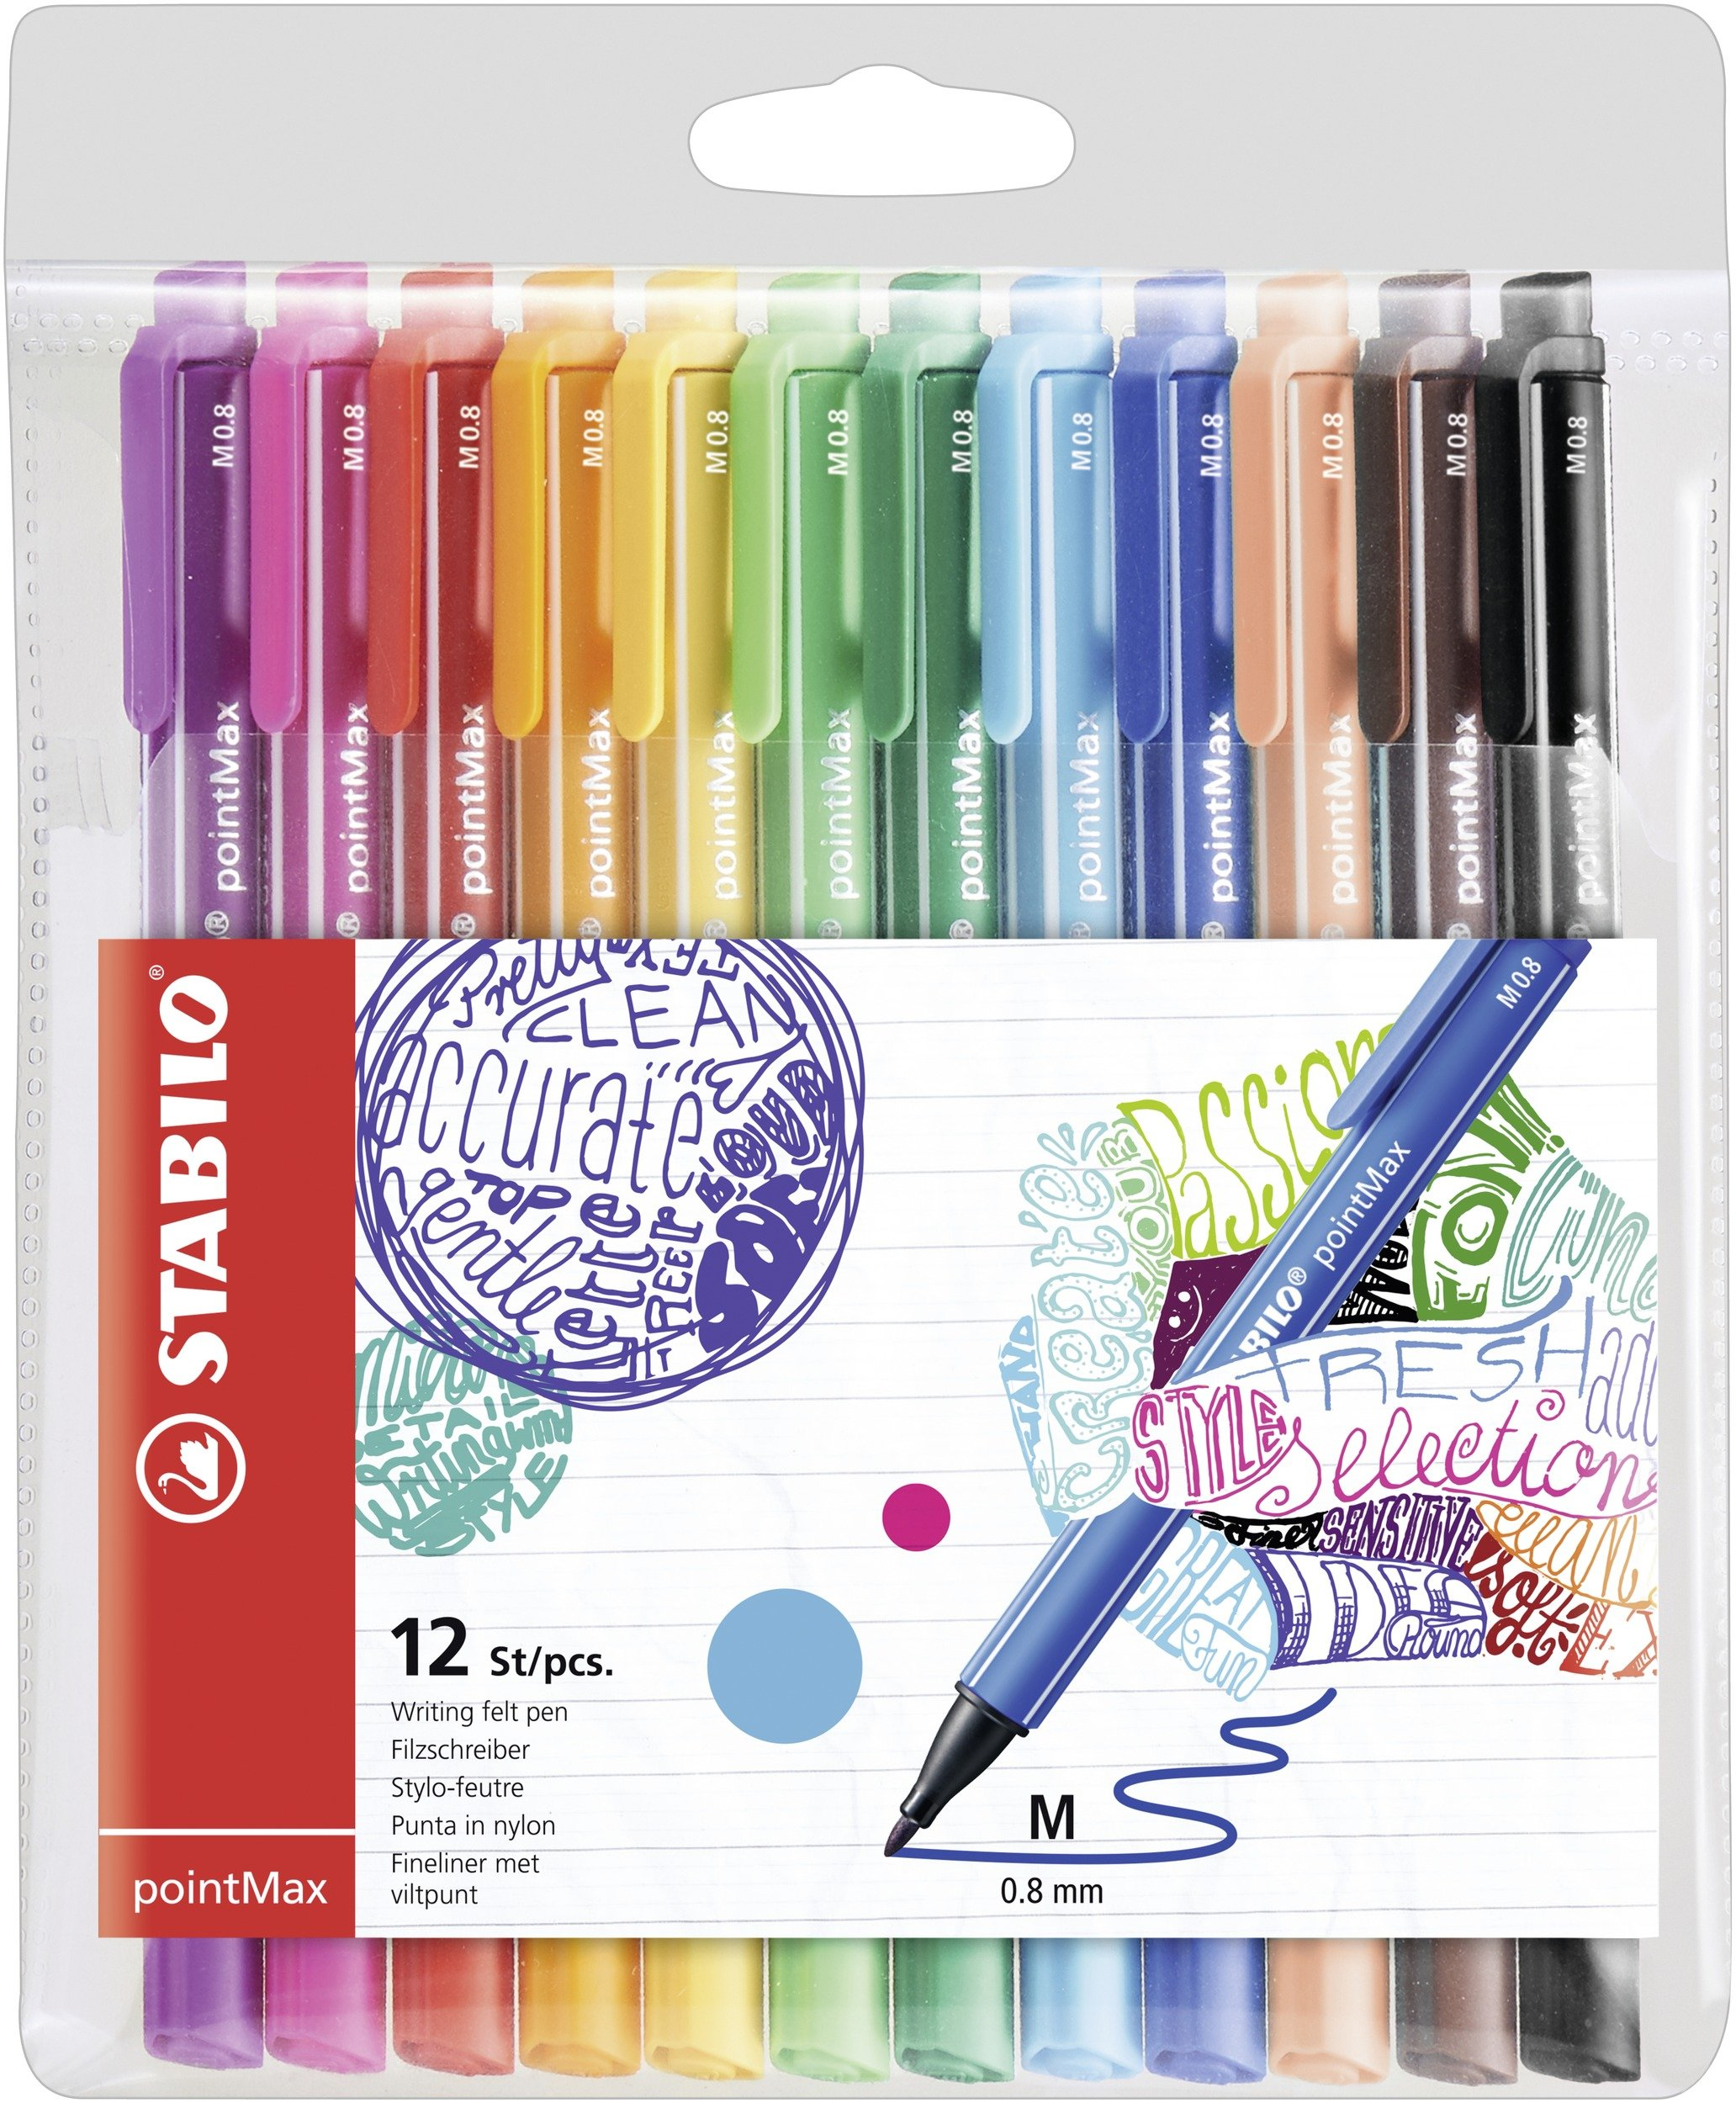 Rotulador punta media Stabilo pointMax – Estuche con 12 colores, multicolor